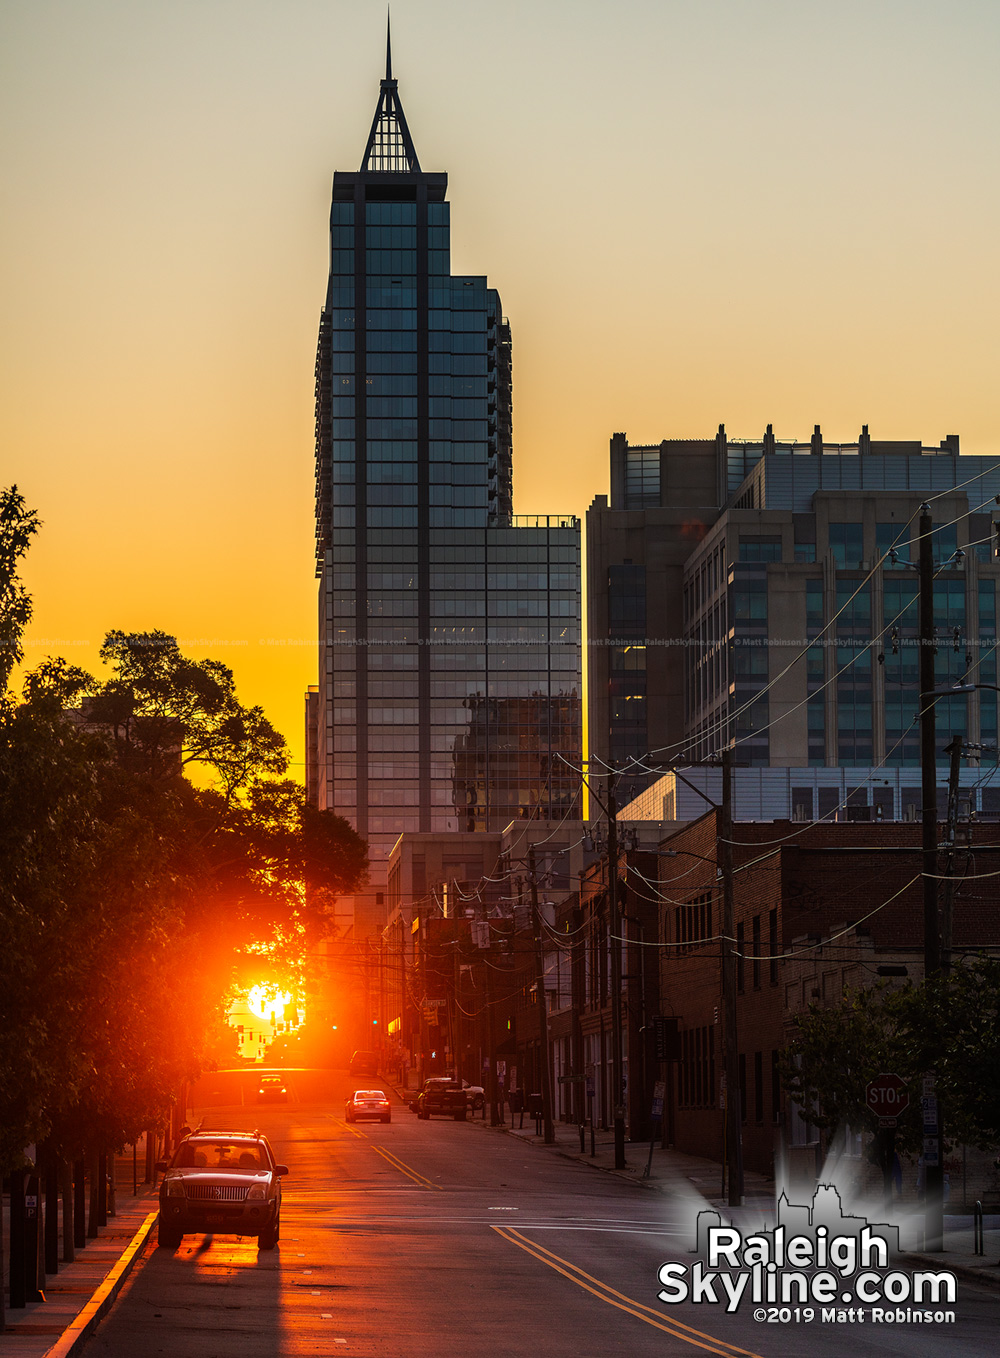 Raleigh-henge sunrise from Martin Street